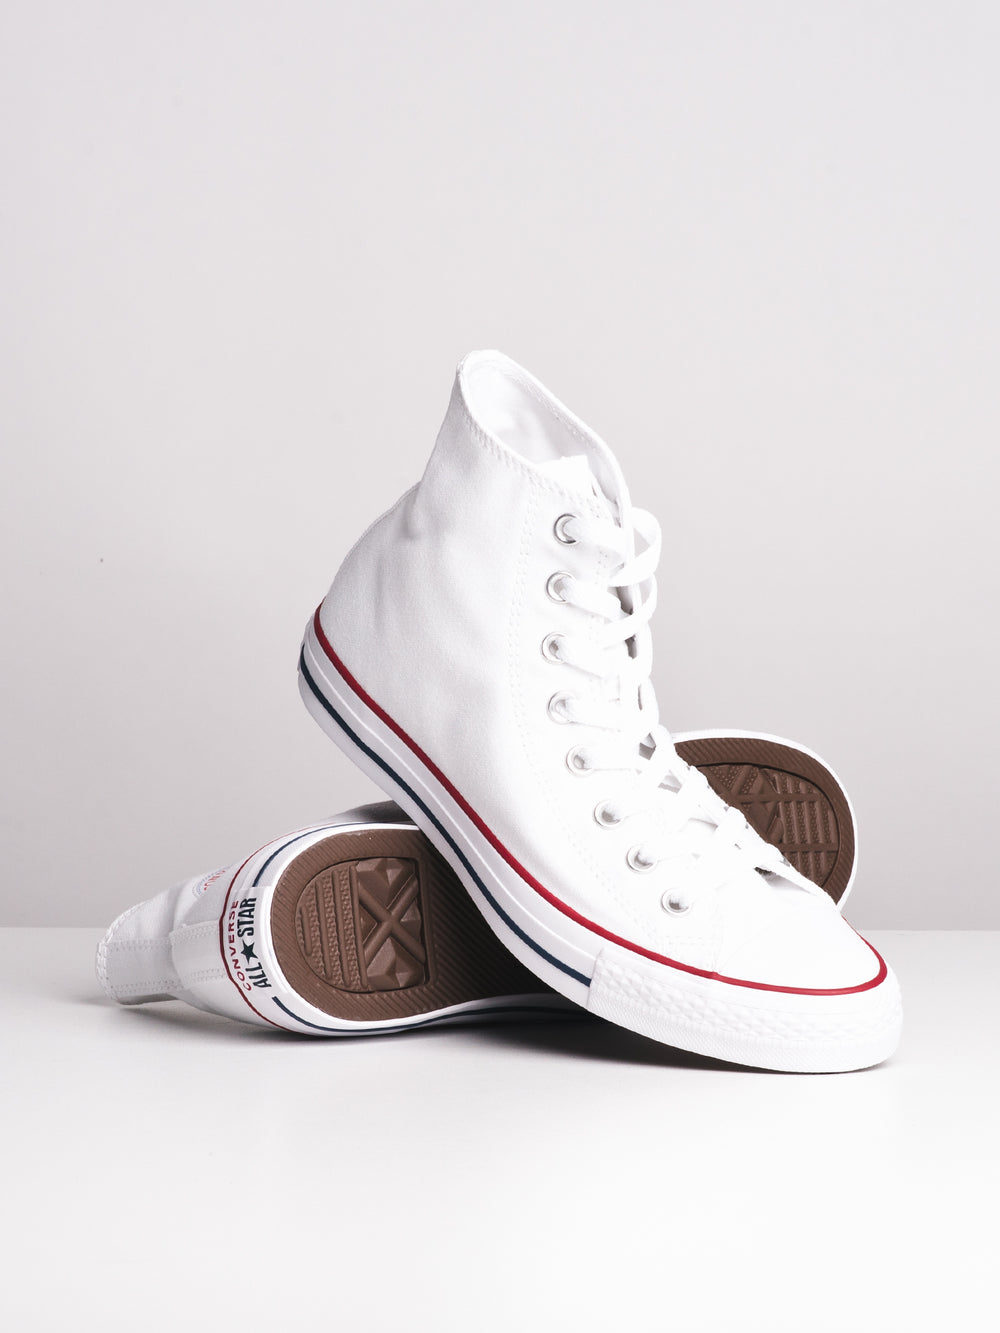 WOMENS CHUCK HI CANVAS SHOES SNEAKER